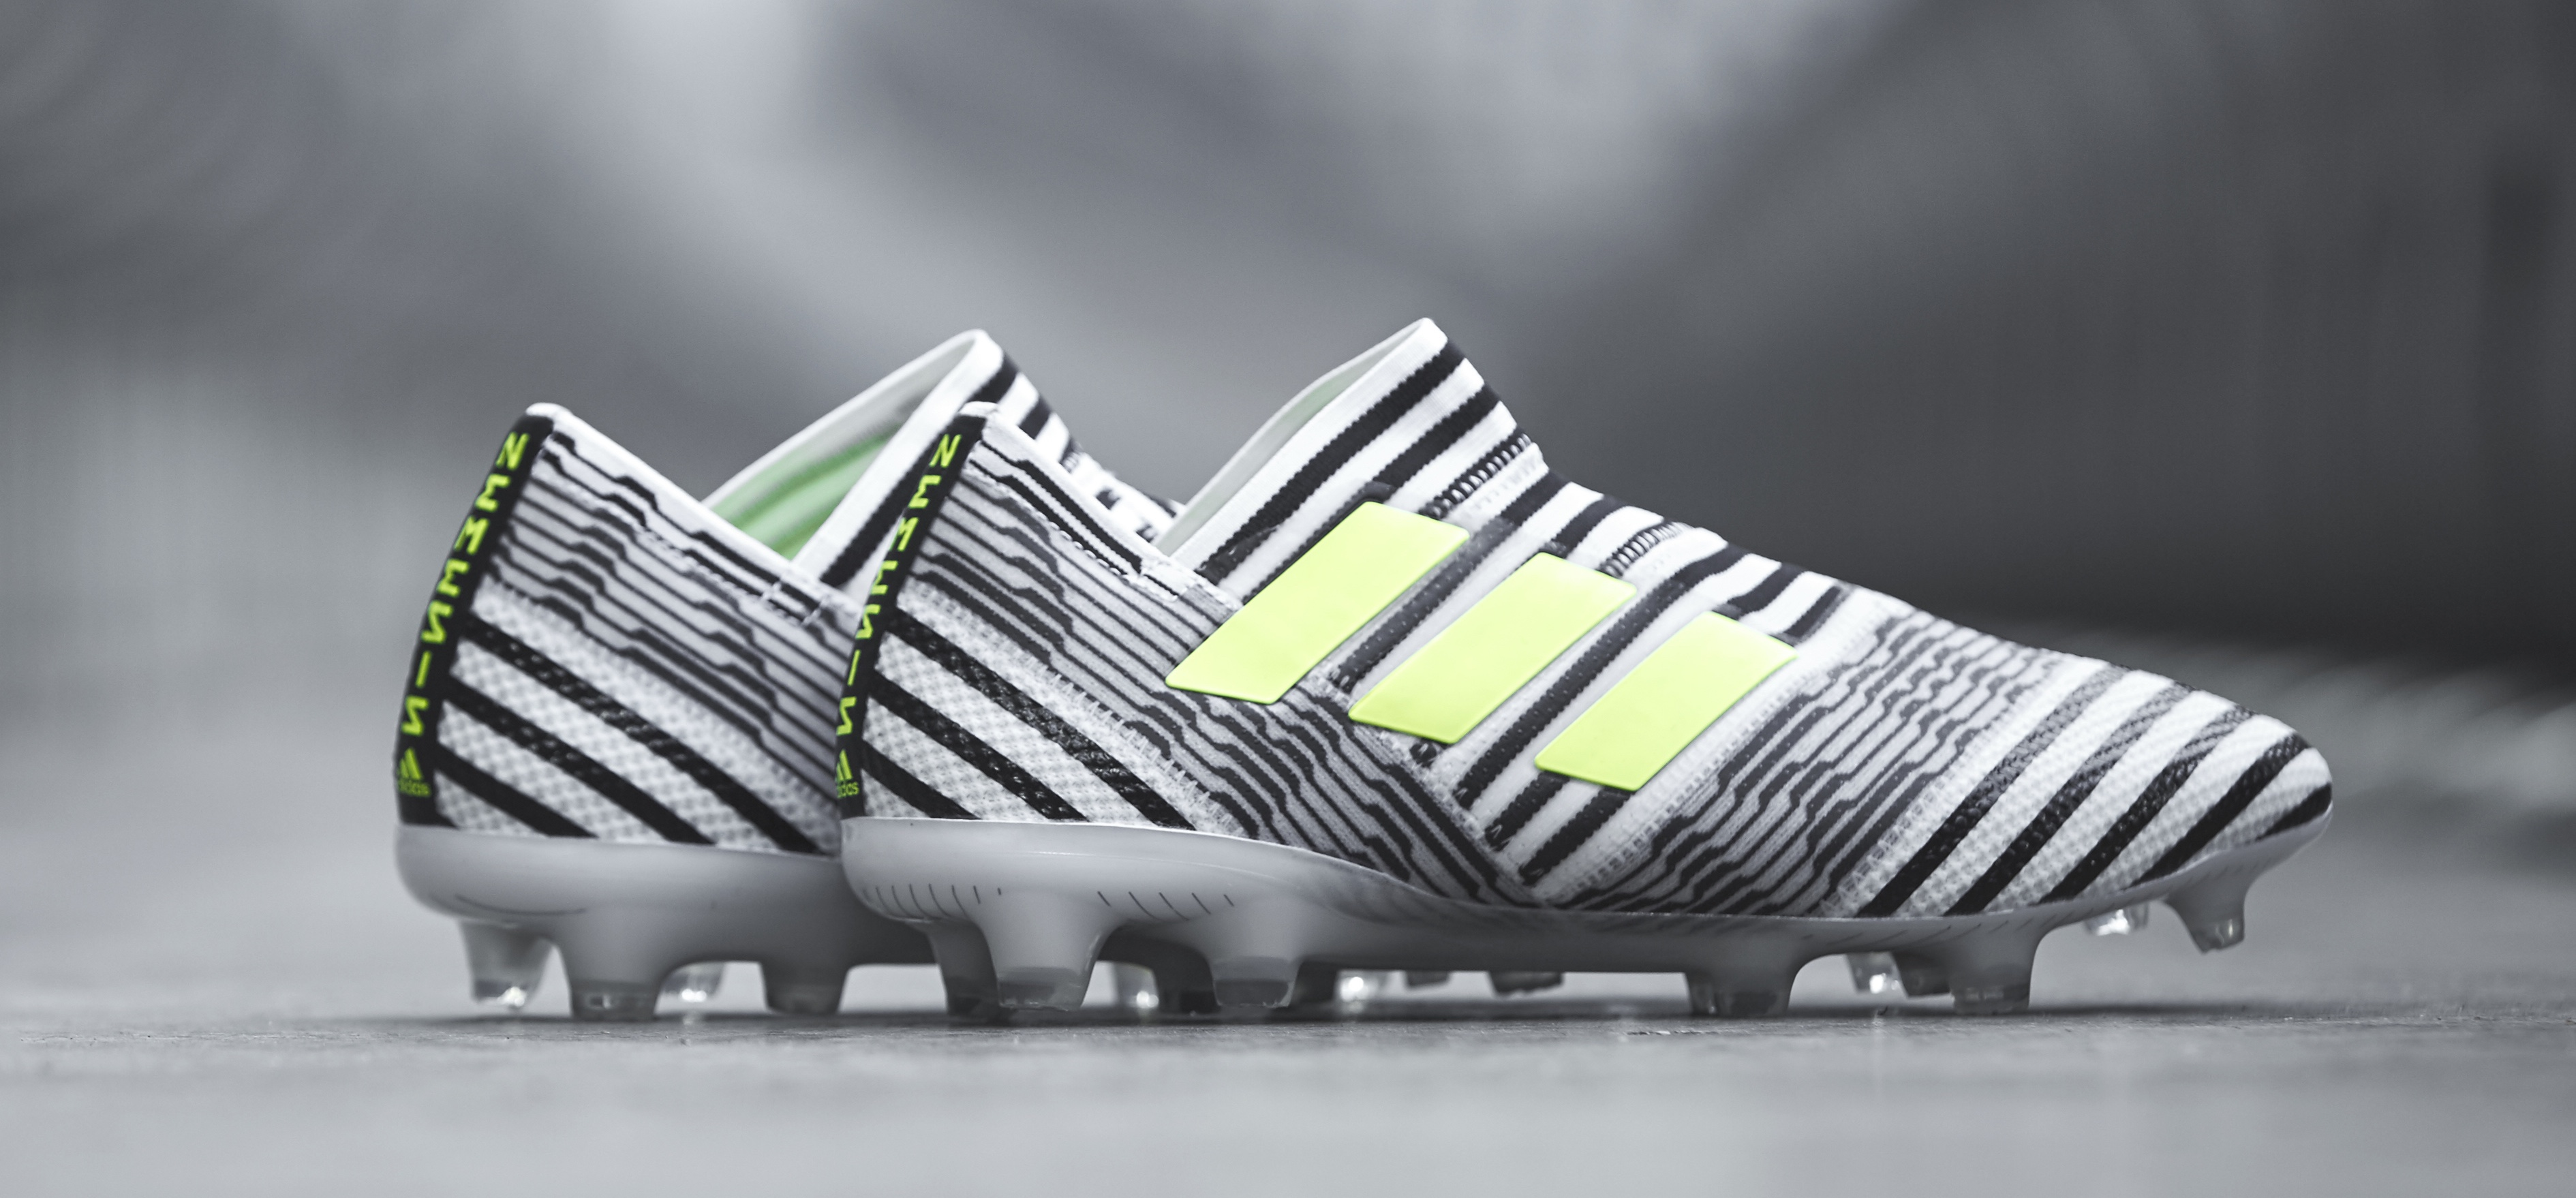 adidas Nemeziz black and white 1